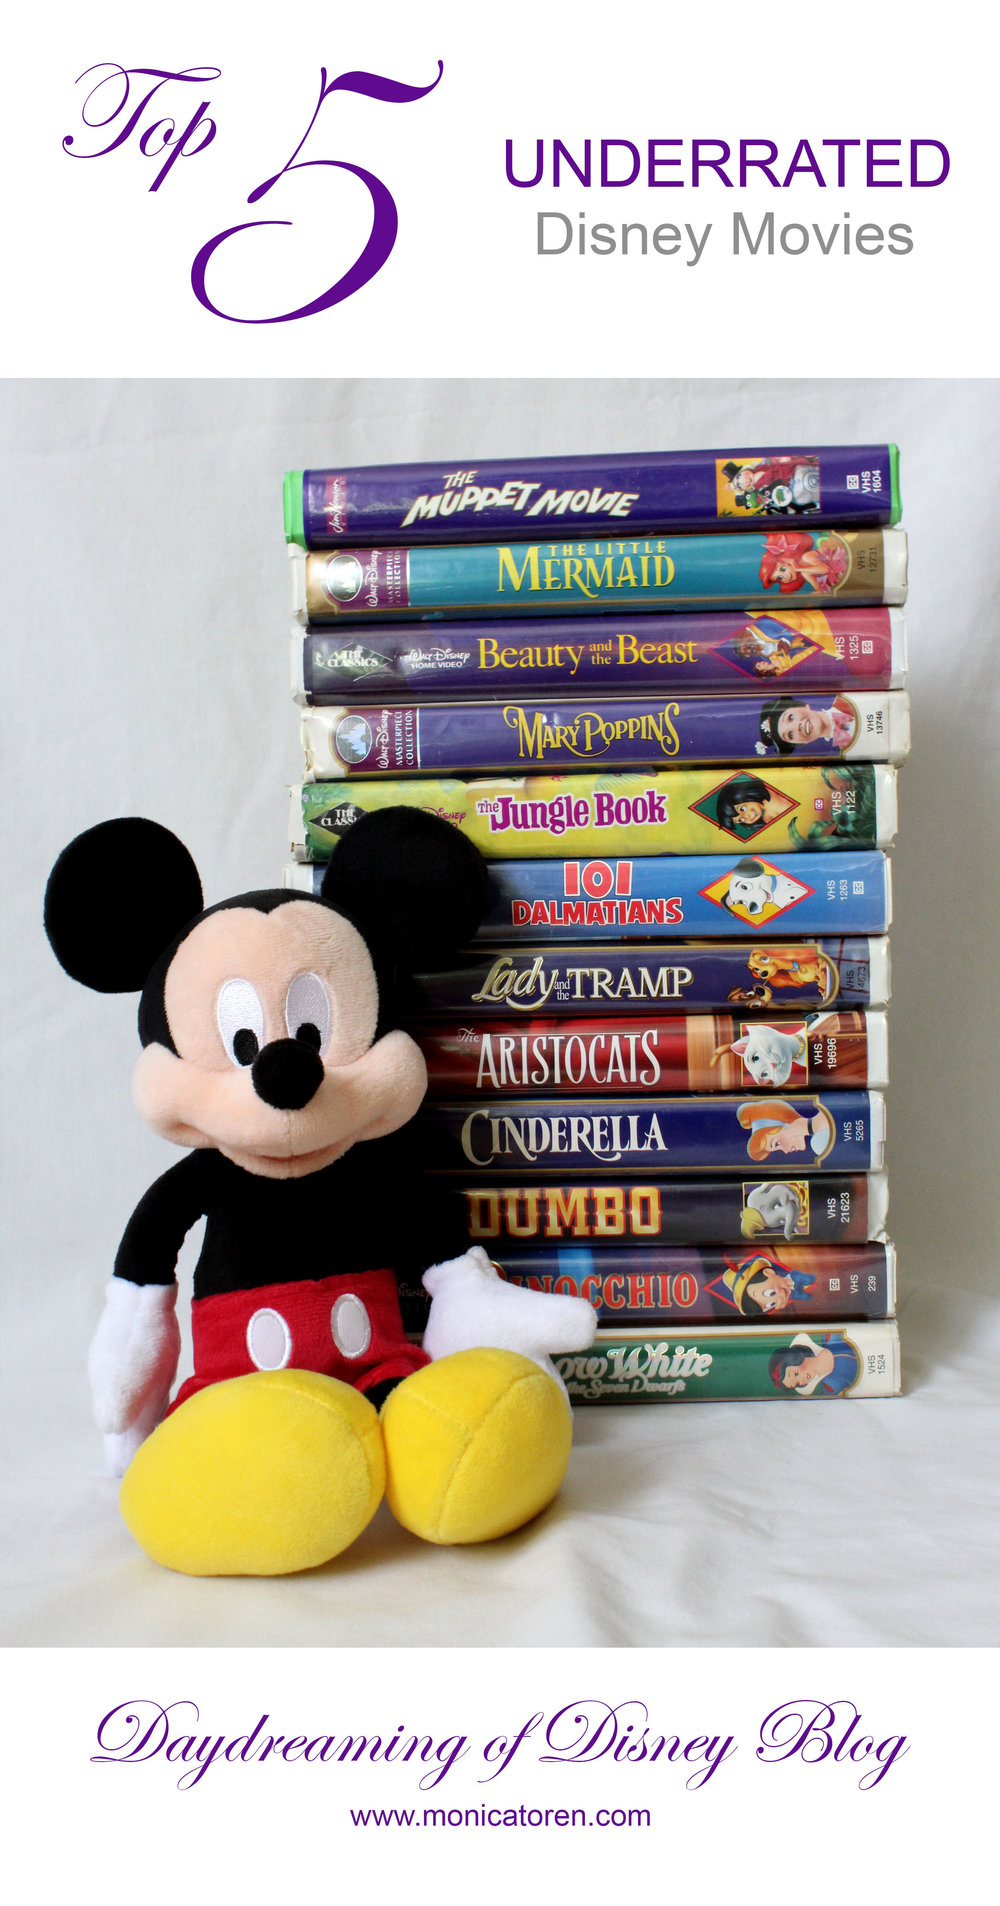 Daydreaming of Disney Blog - Top Five Underrated Disney Movies